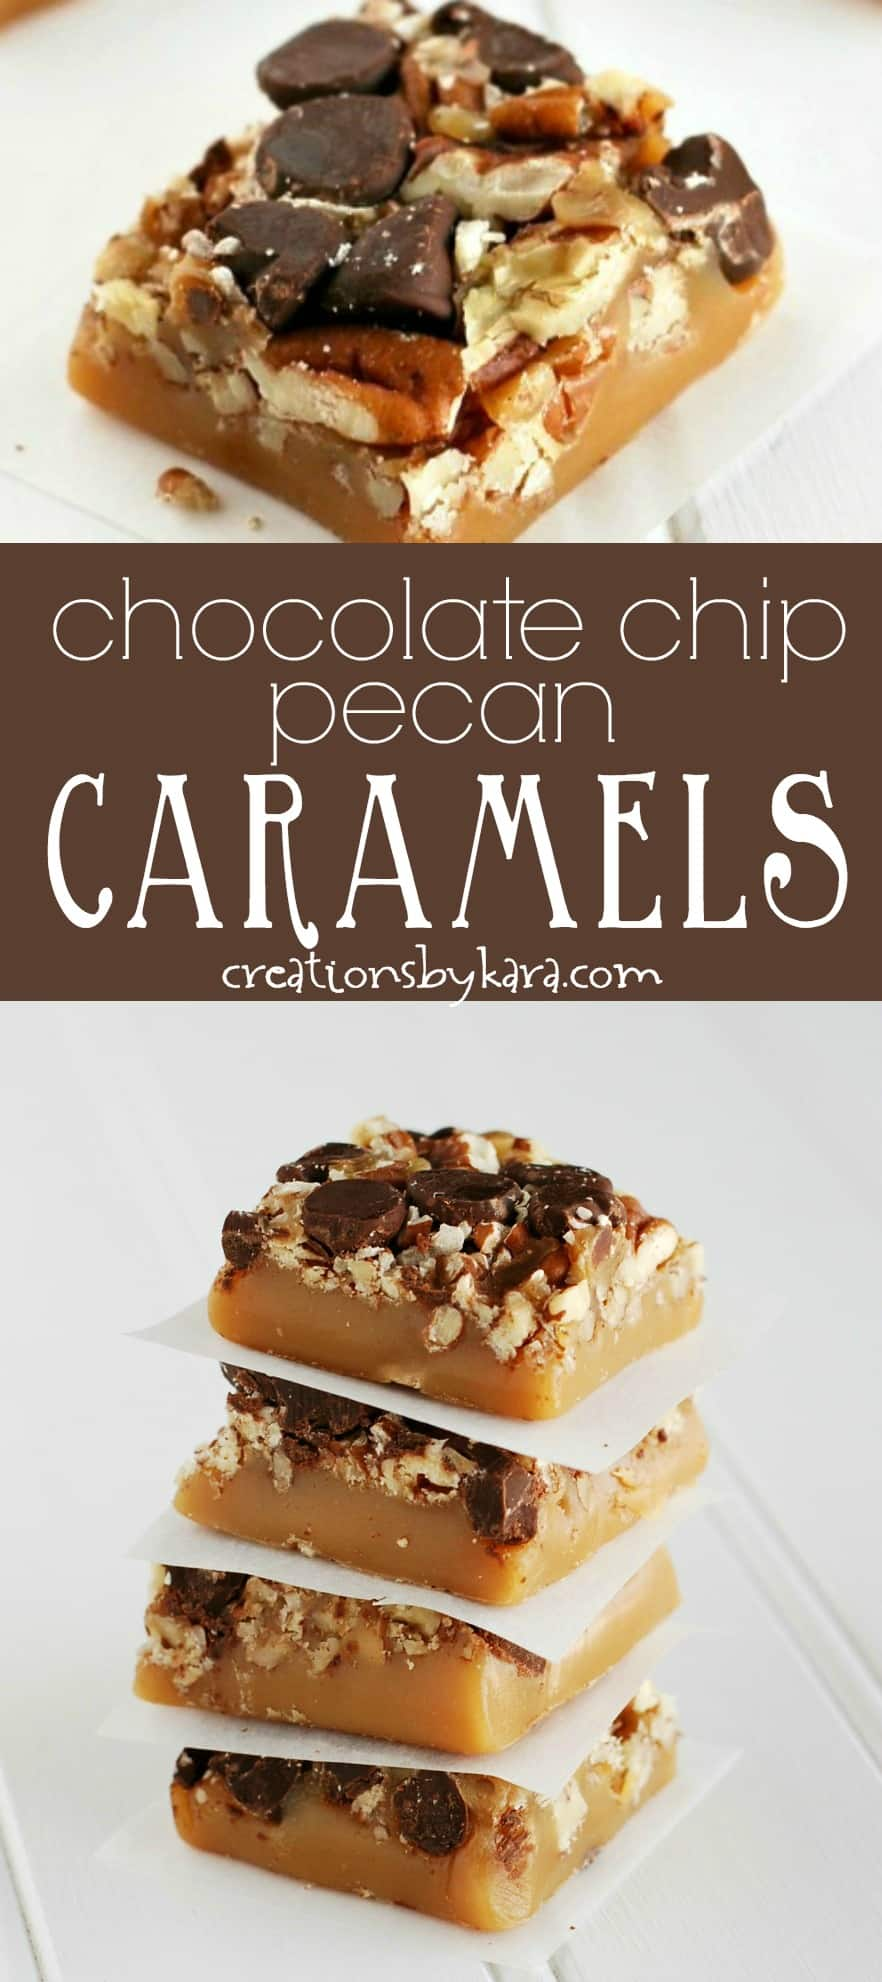 Chocolate Chip Pecan Caramels - if you love turtle candies, you must make this recipe for homemade caramels. They are so decadent! #caramels #candyrecipe